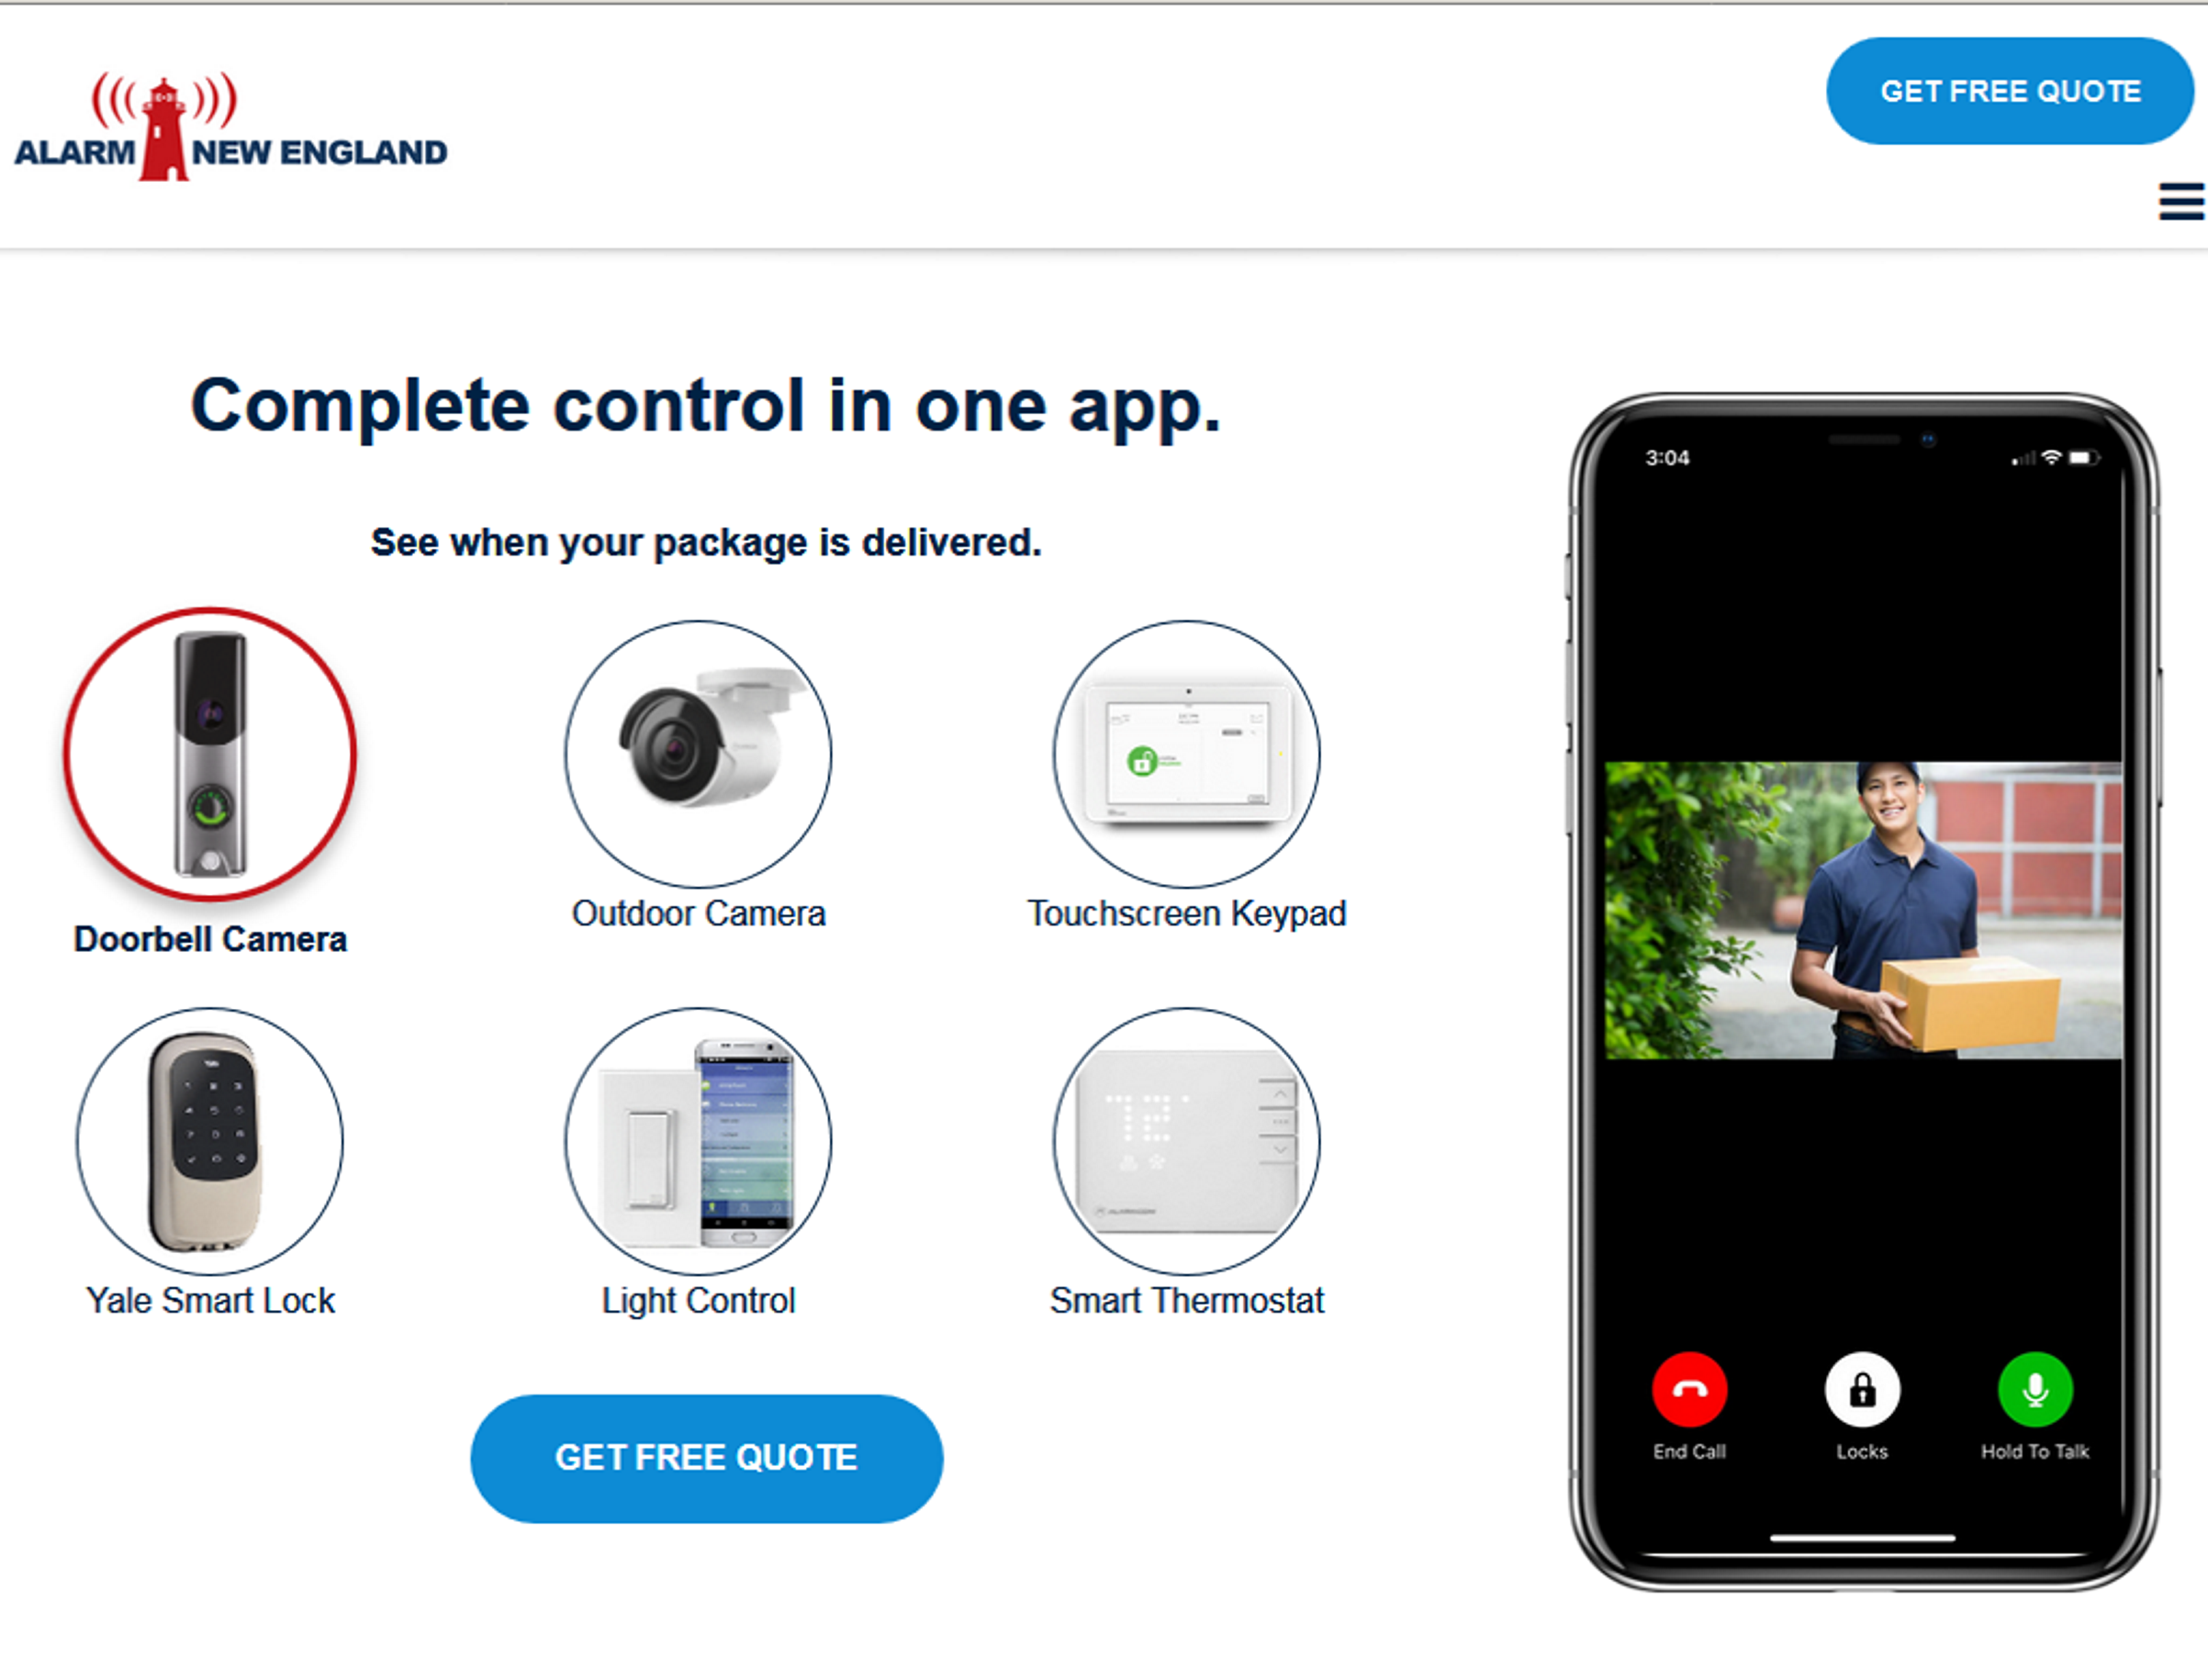 Home Security automation control  in North shore / Newburyport ma